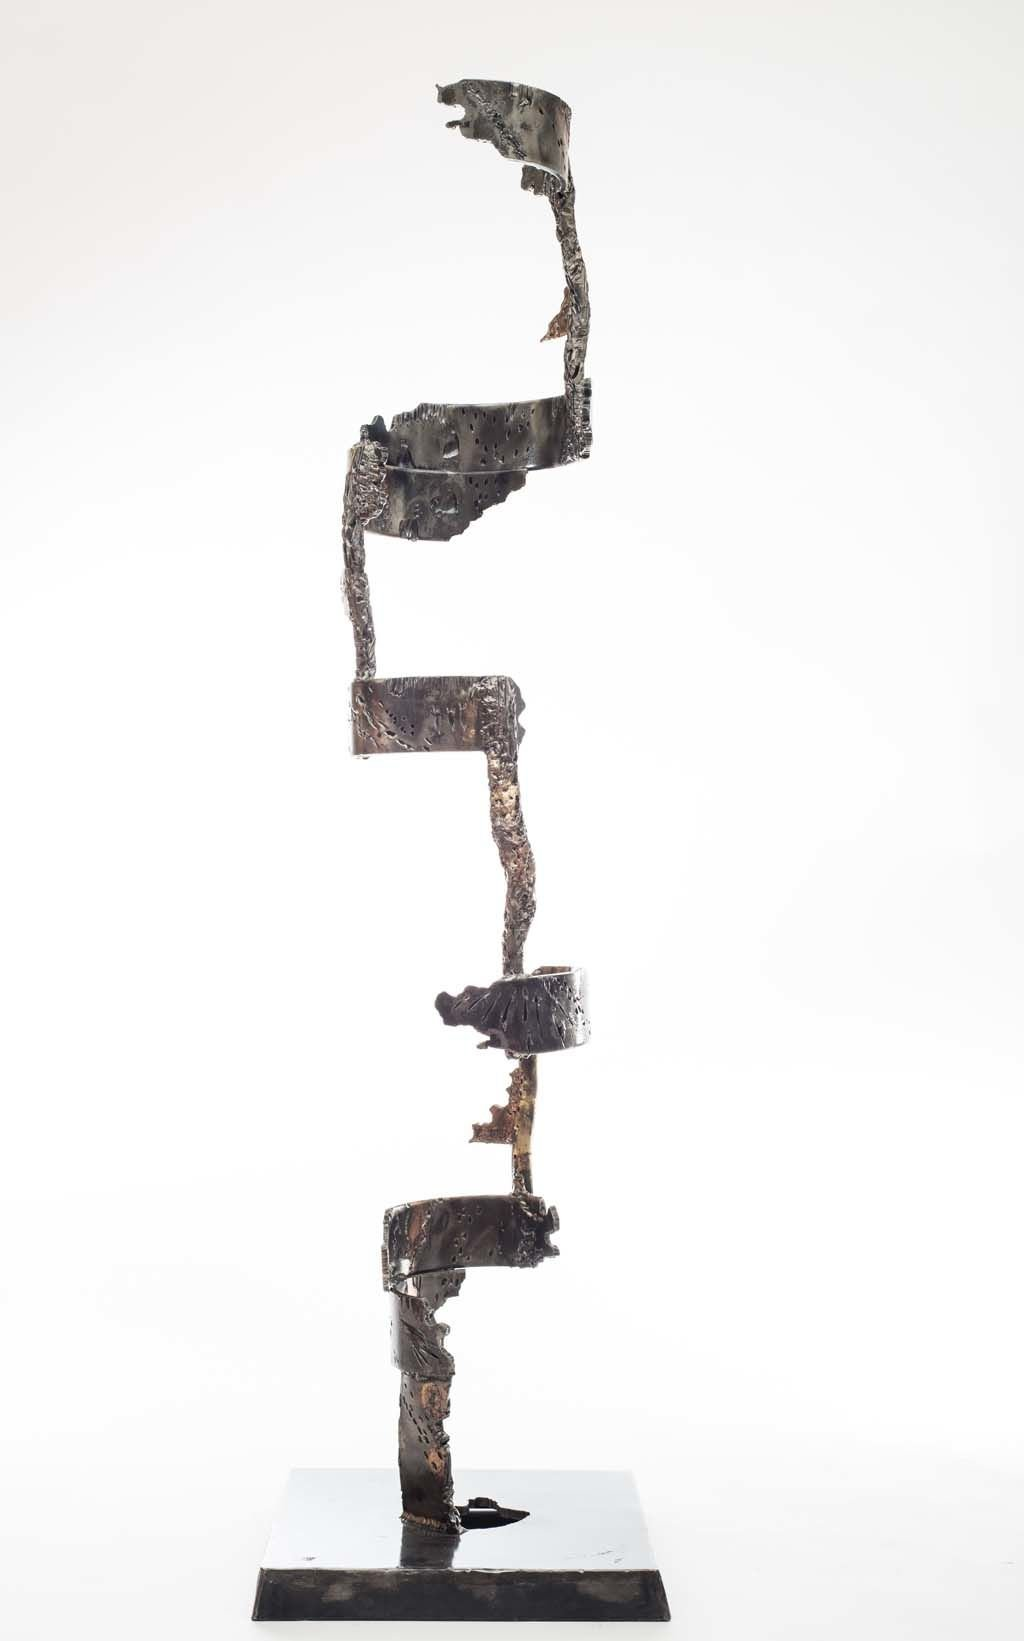 Insights II | 2014 | Iron & brass sculpture | 148x40x40 cm | Rami Ater